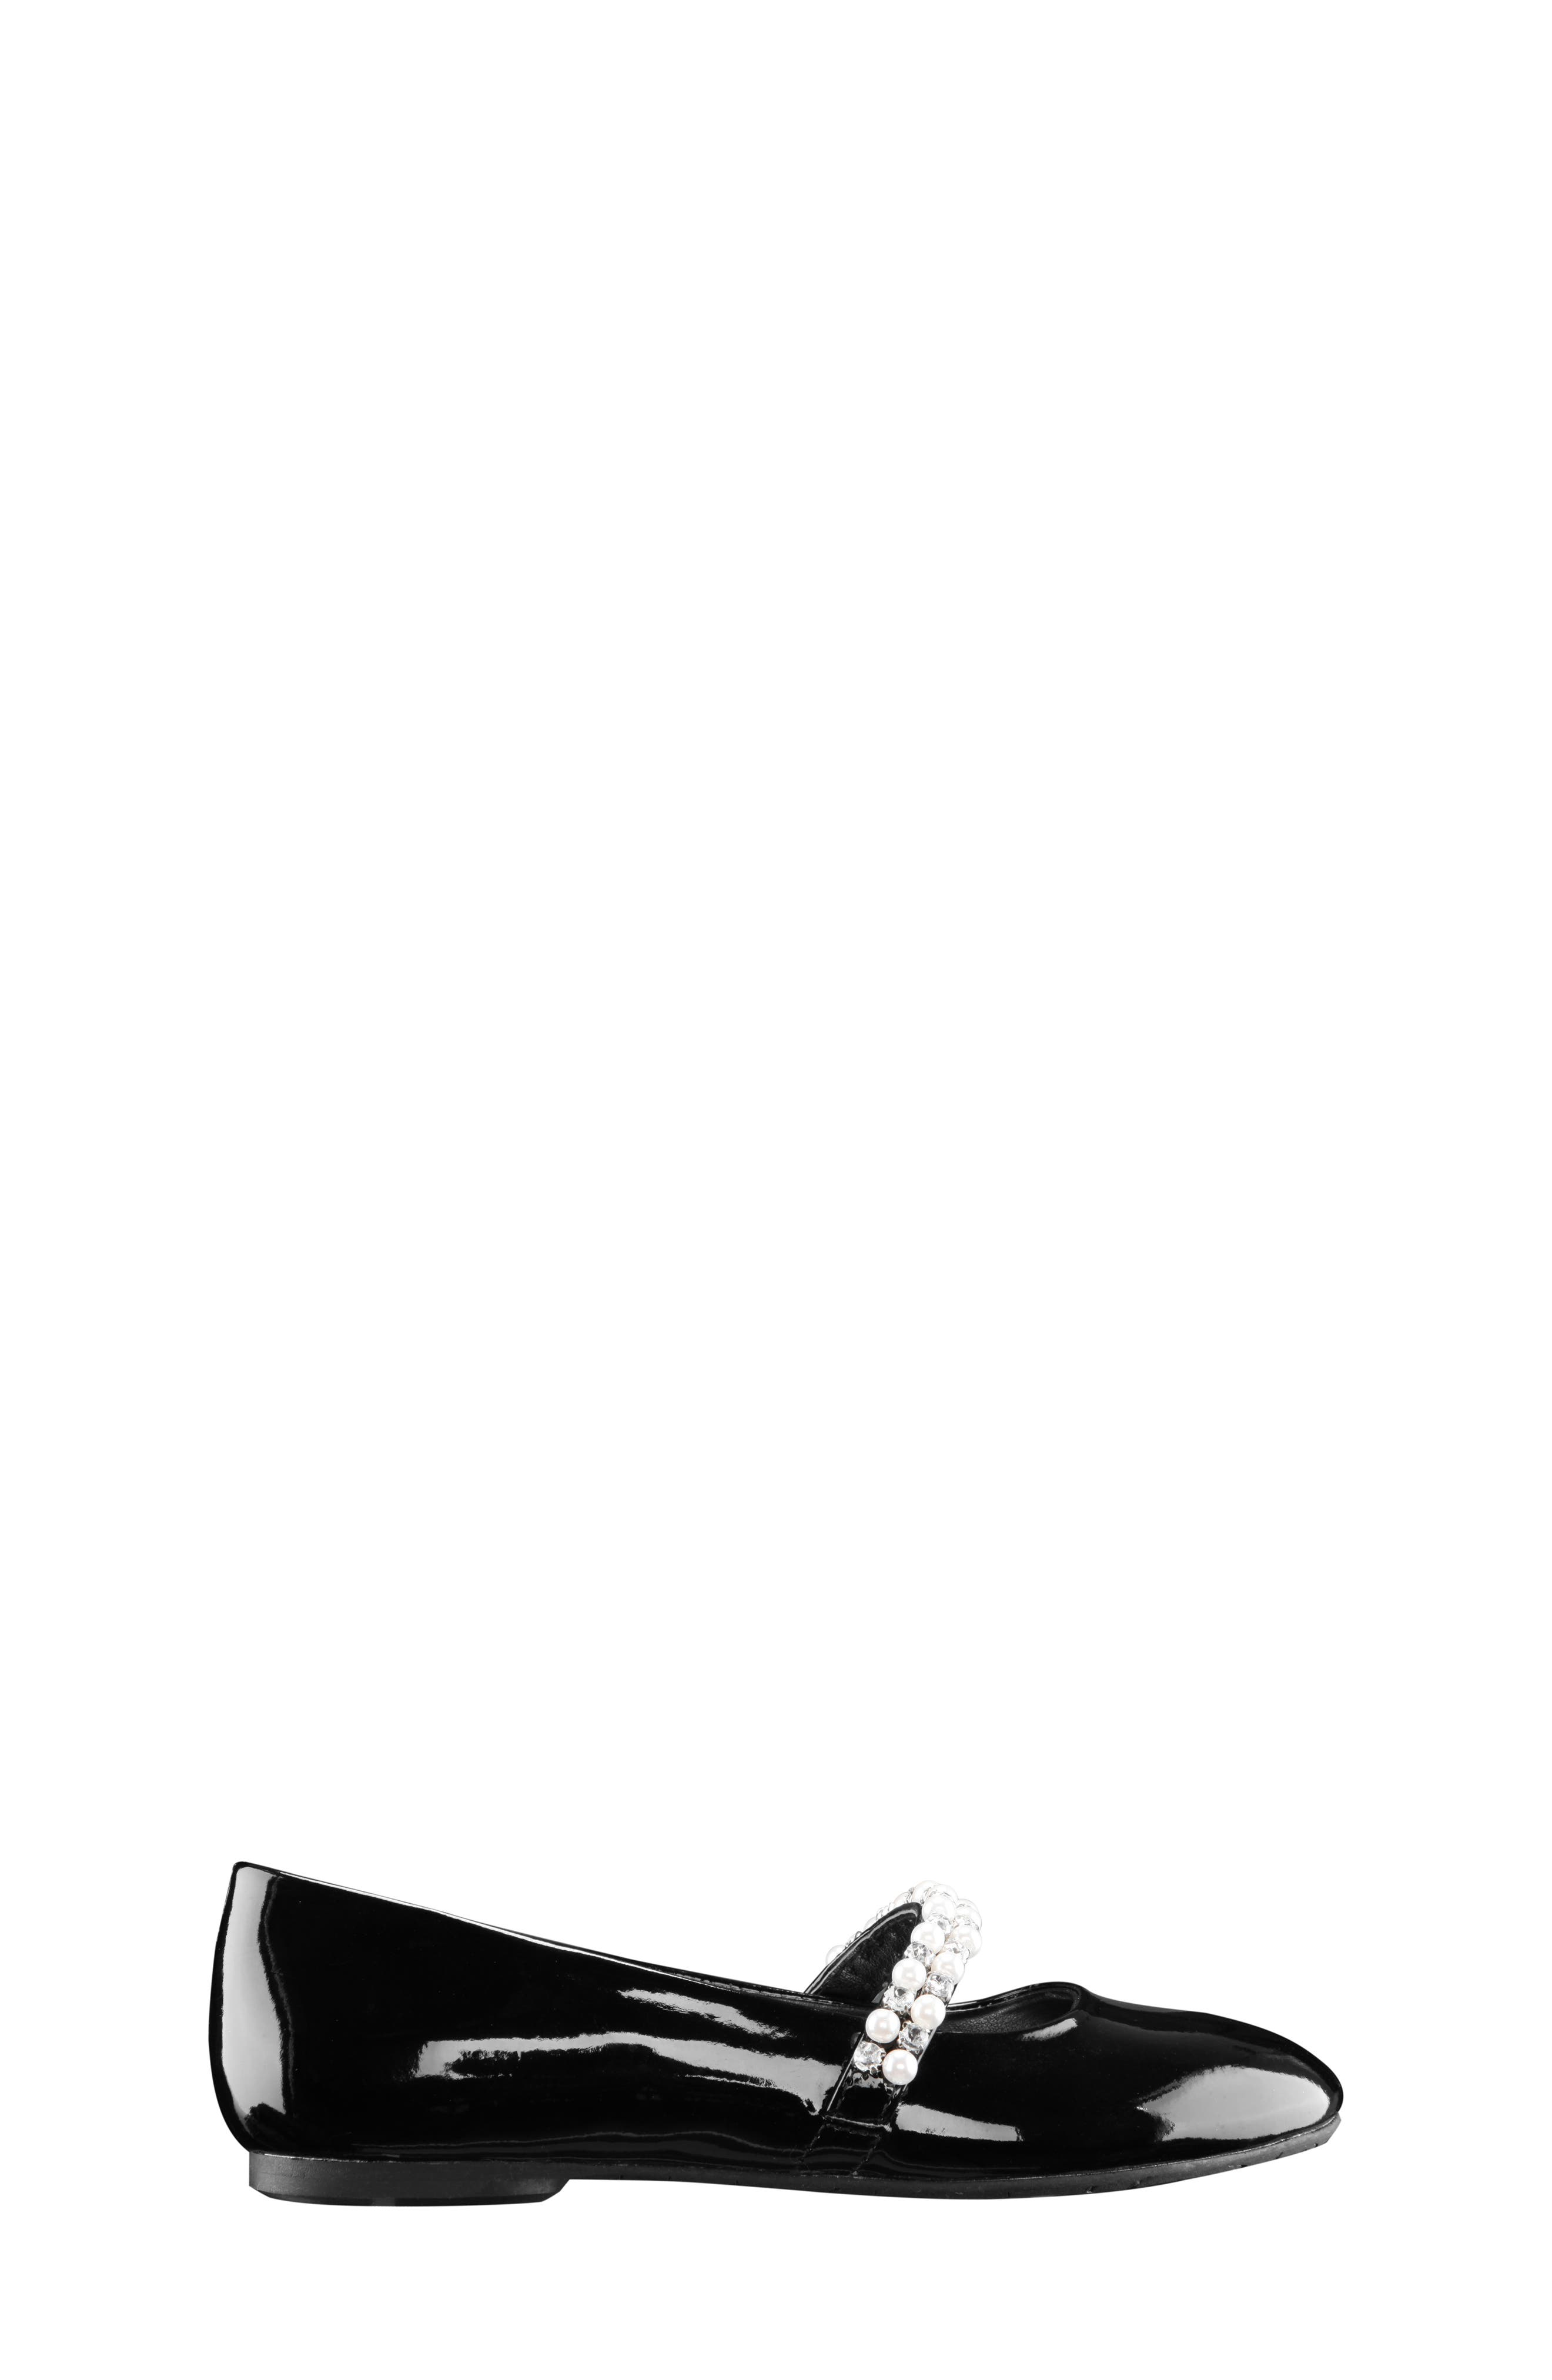 'Nataly' Slip-On,                             Alternate thumbnail 4, color,                             BLACK PATENT